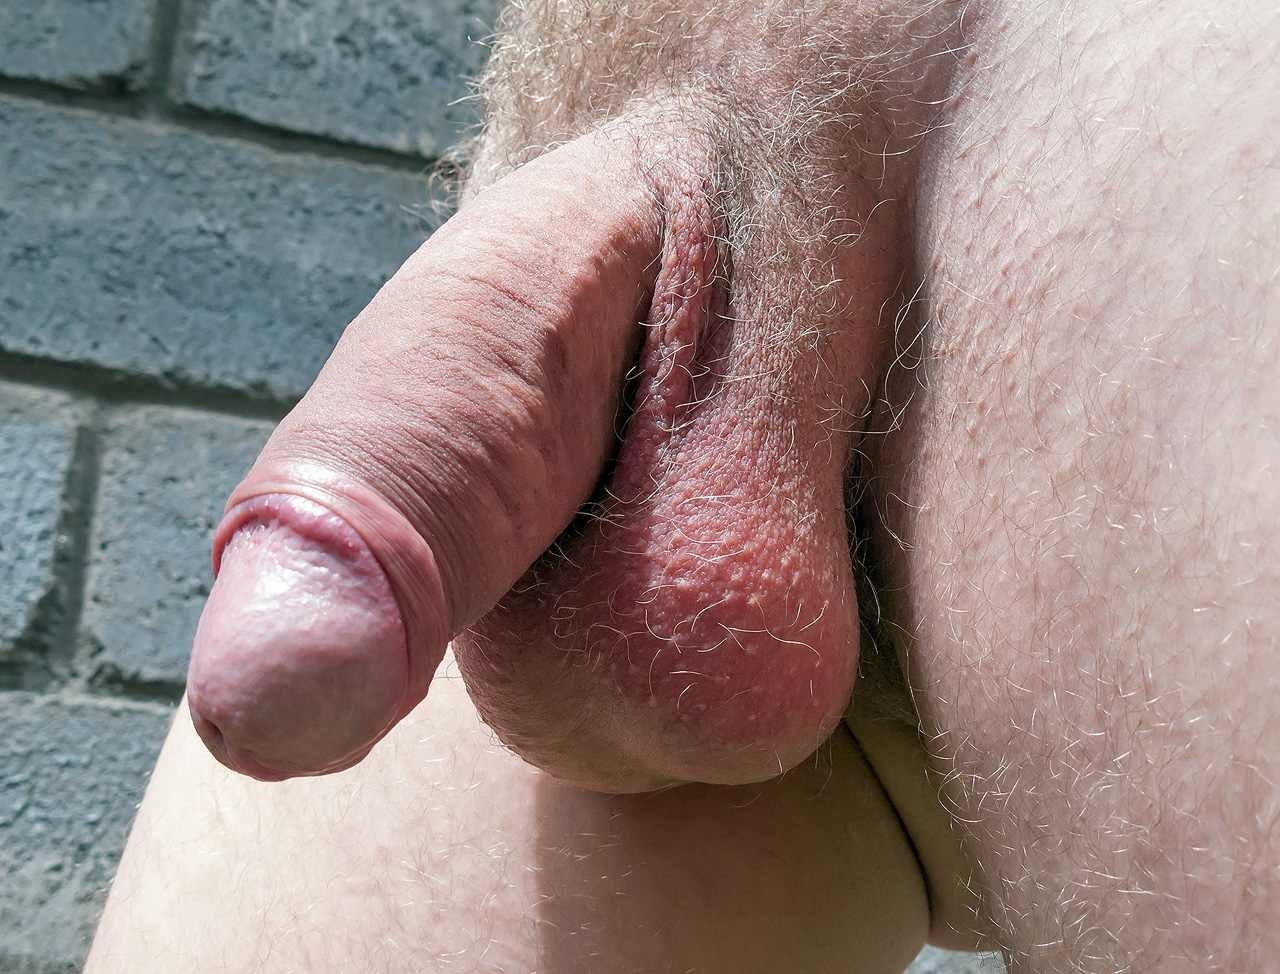 Closeup picture of a fully erected penis